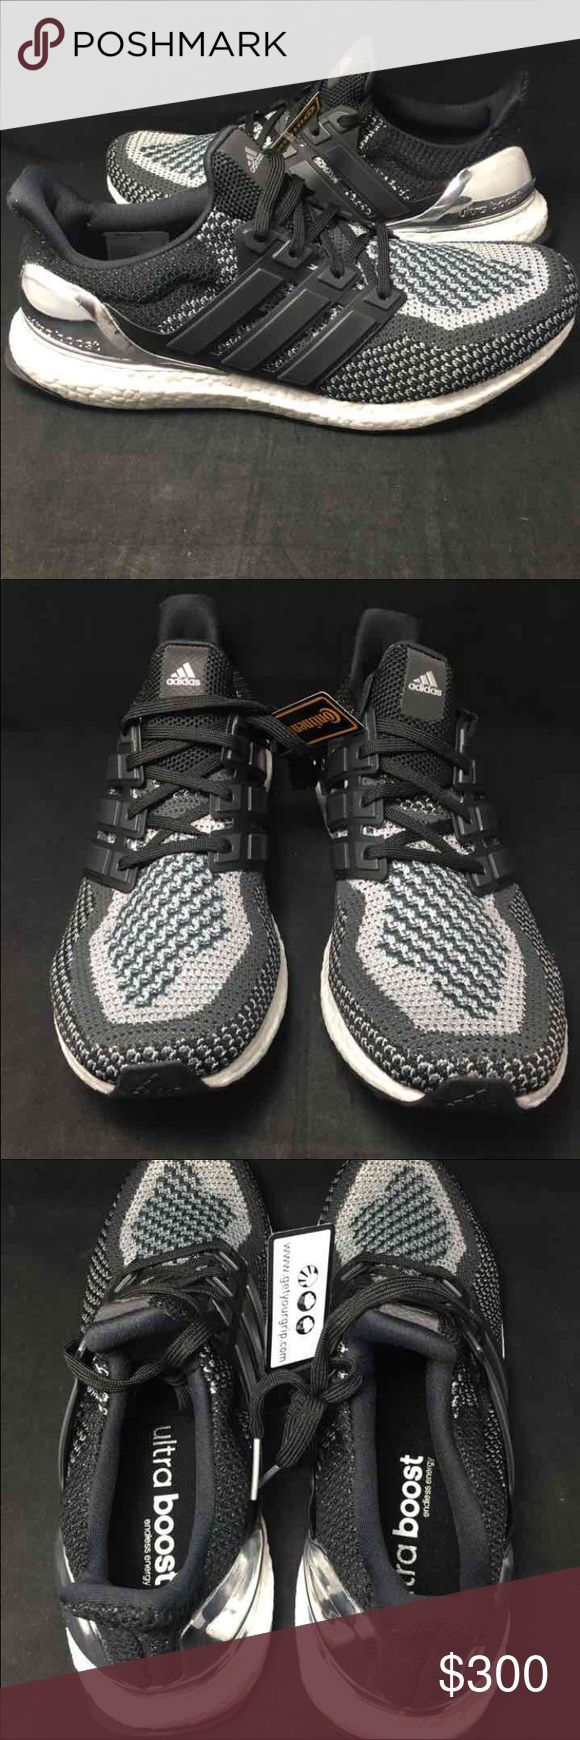 467eb72bf54 ... Adidas Ultra Boost LTD Silver Medal M 10.5 W 12 Adidas Ultra Boost LTD  ...